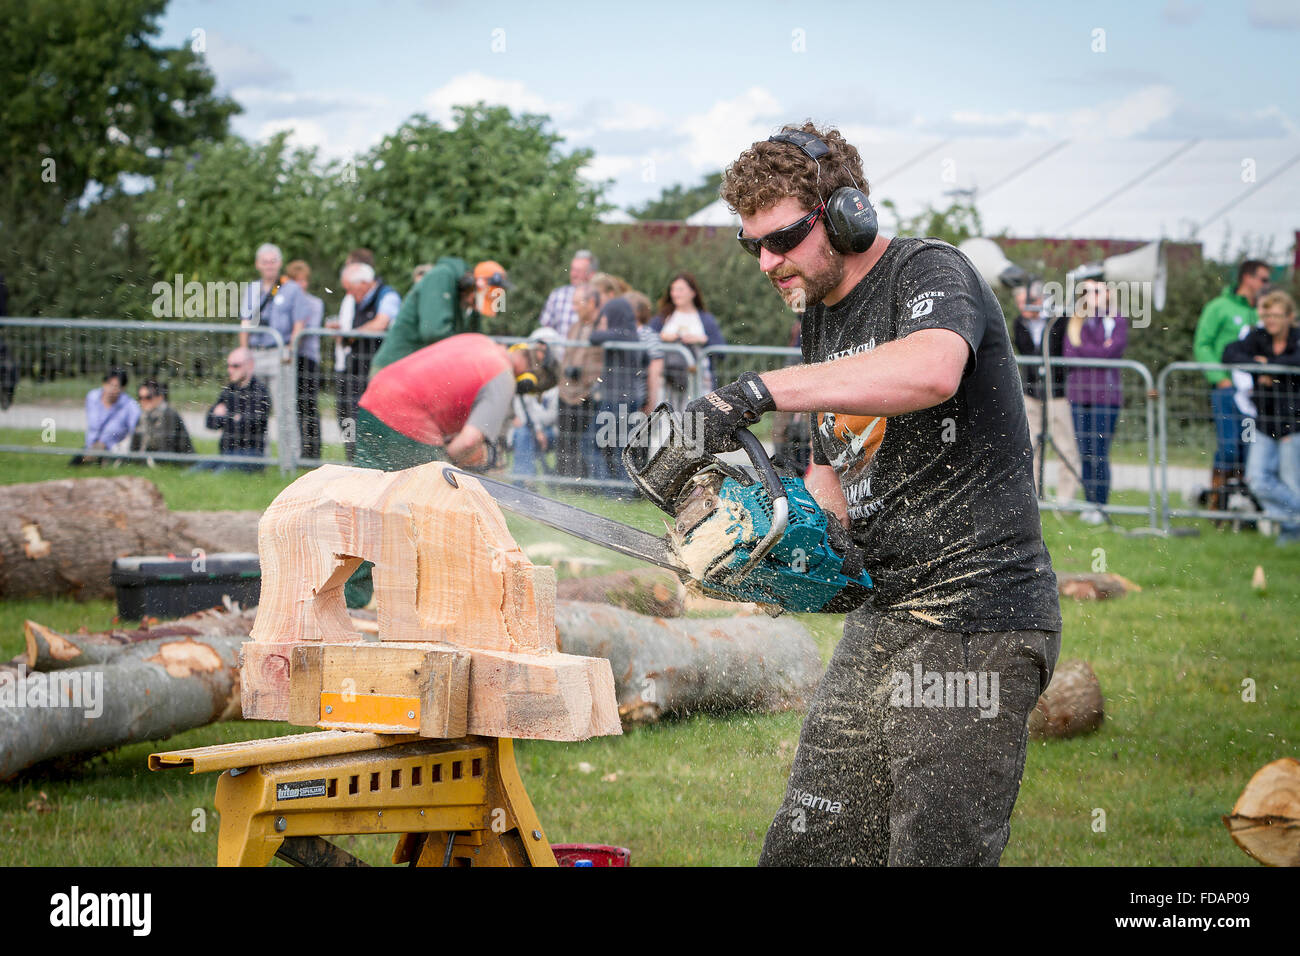 Knutsford, Cheshire, UK, 29th Aug, 2015. The 11th English Open Chainsaw Carving Competition Cheshire Game & - Stock Image